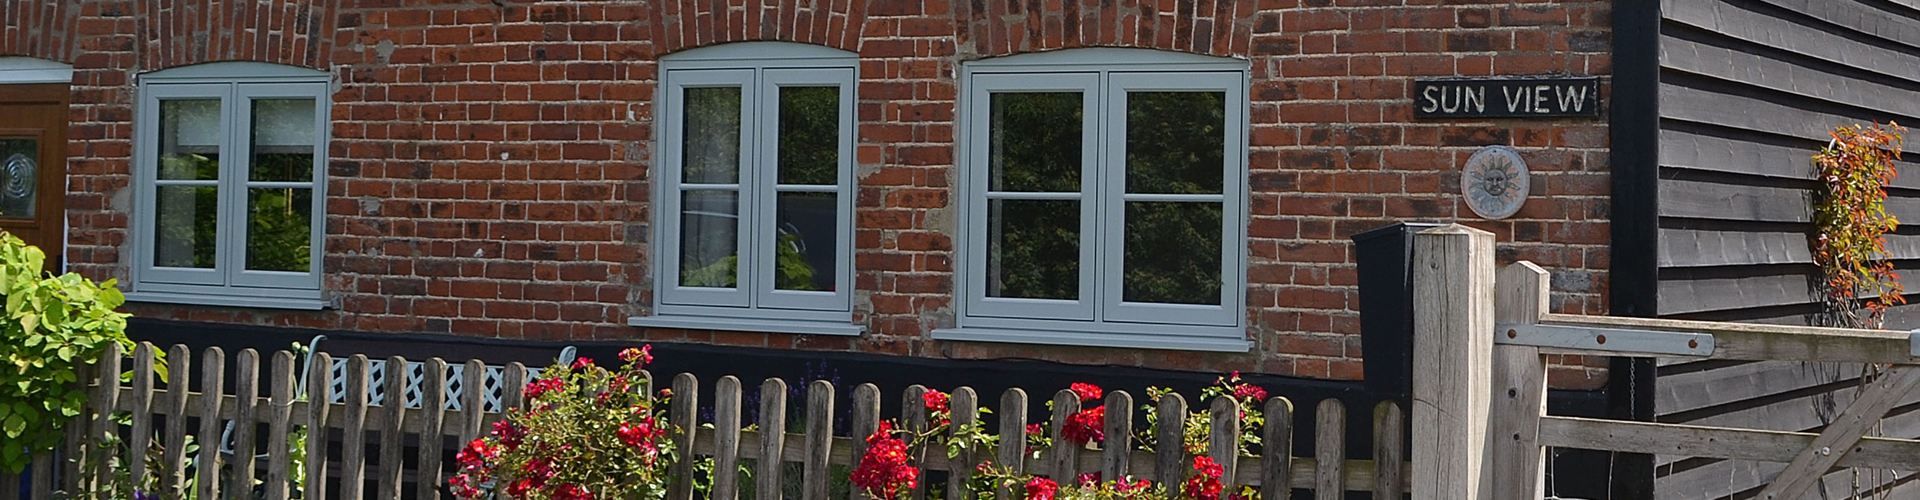 Rehau Rio Flush Window